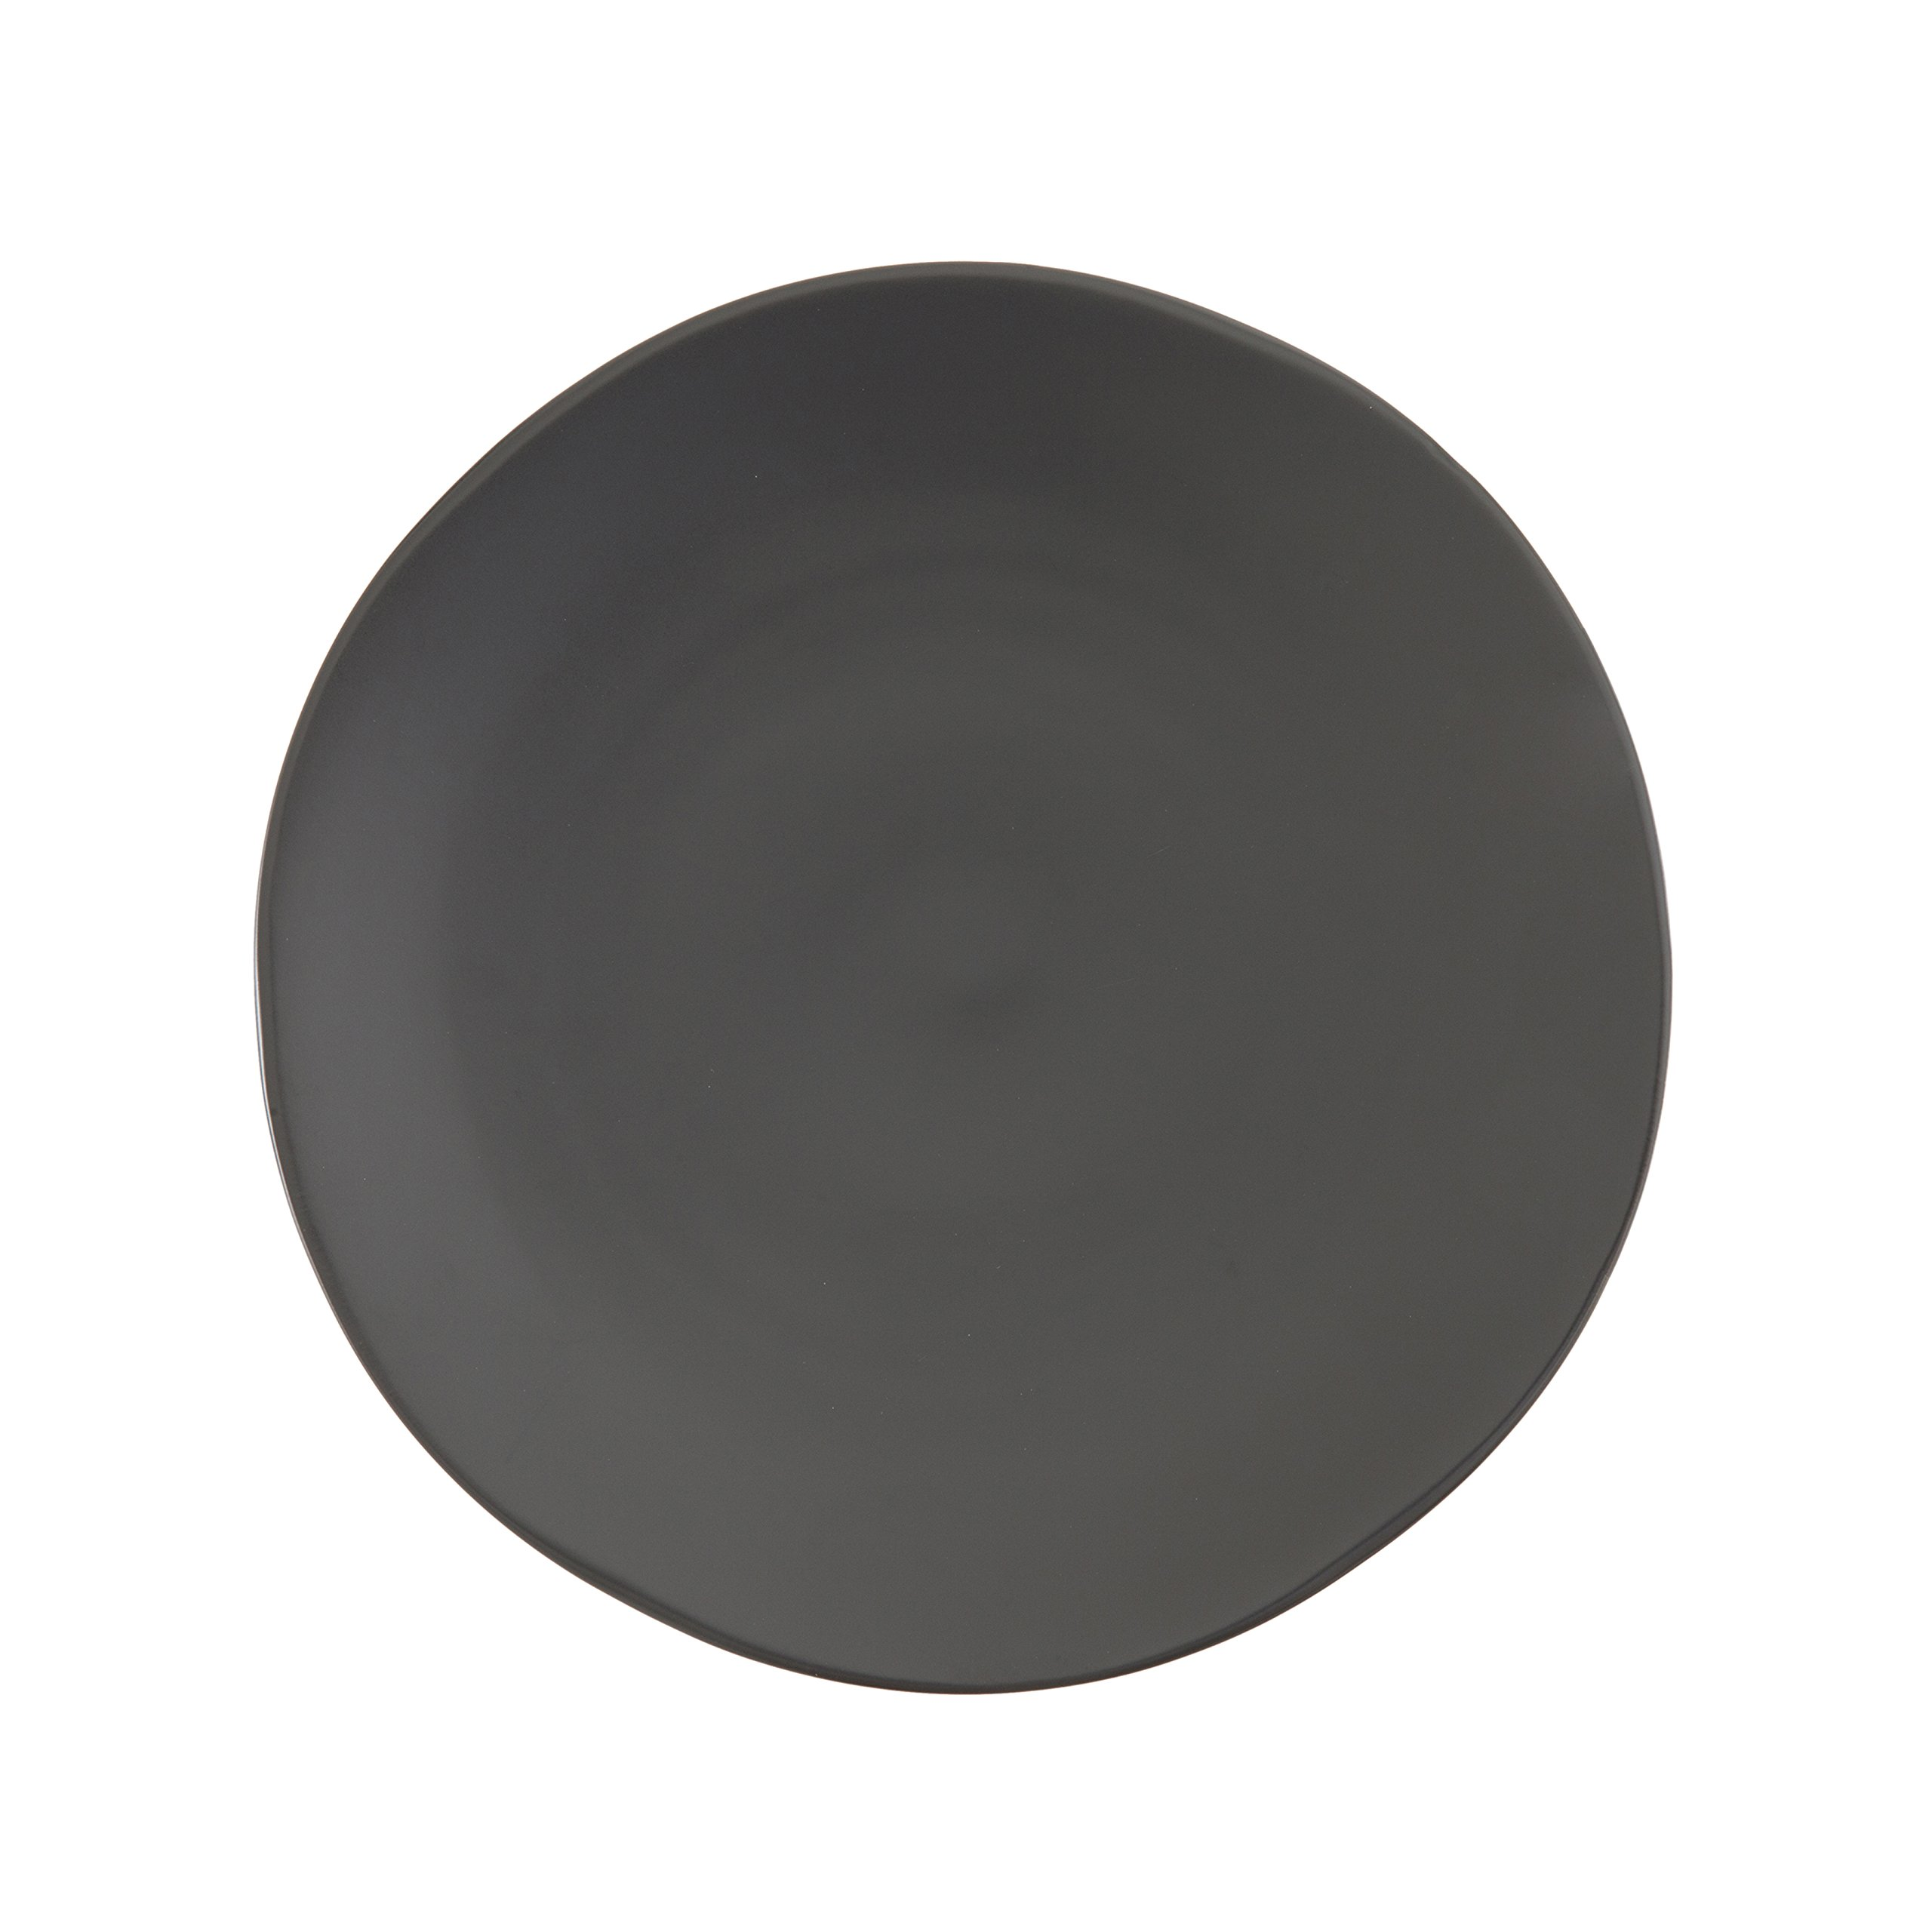 Fortessa Vitraluxe Dinnerware Heirloom Matte Finish Show Plate 12-Inch, Charcoal, Set of 4